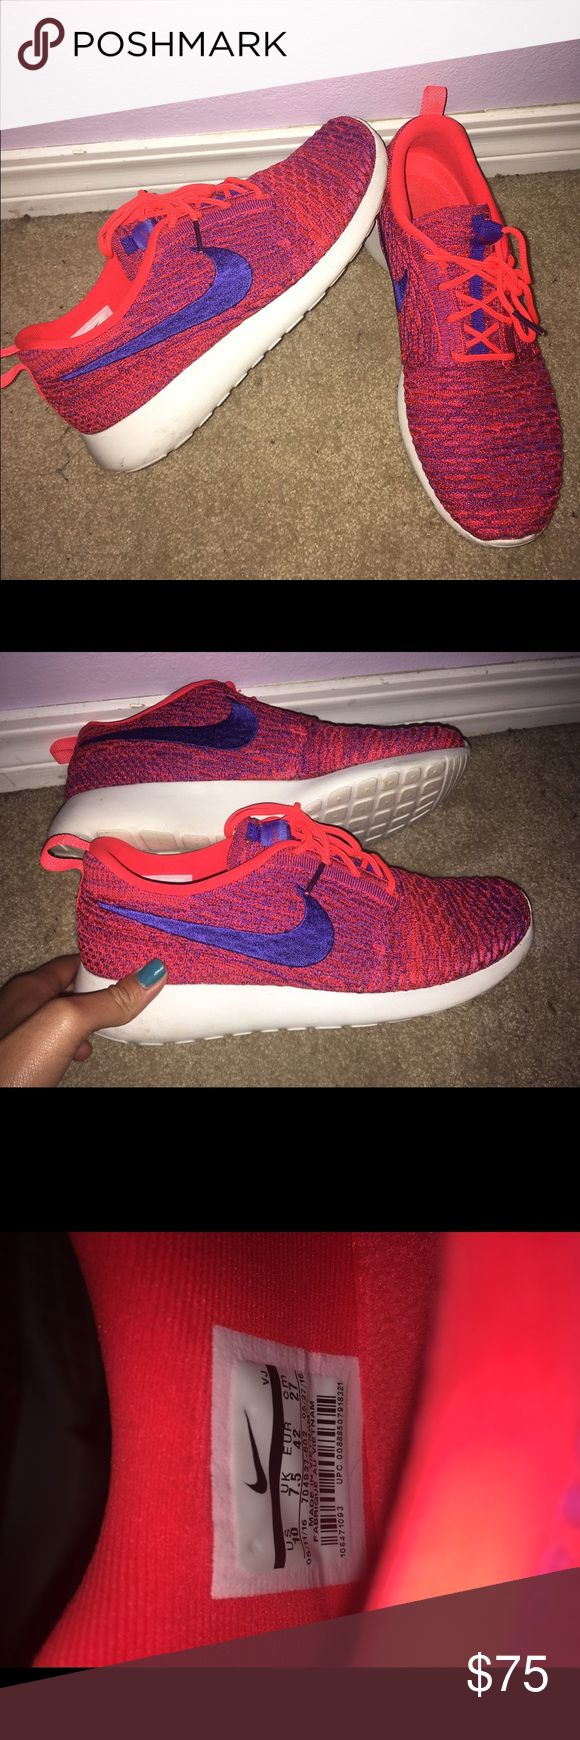 Neon Nike Roshes 1. Hi!! (: are you interested? feel free to bundle. we can bundle almost anything 2. no swapping 3. will clean items upon request 4. any clothing will be washed 5. shipped with in 3 days of purchase 6. have various items not uploaded, so if there are any specific requests i might have it((: 7. ENJOY💖 Nike Shoes Sneakers